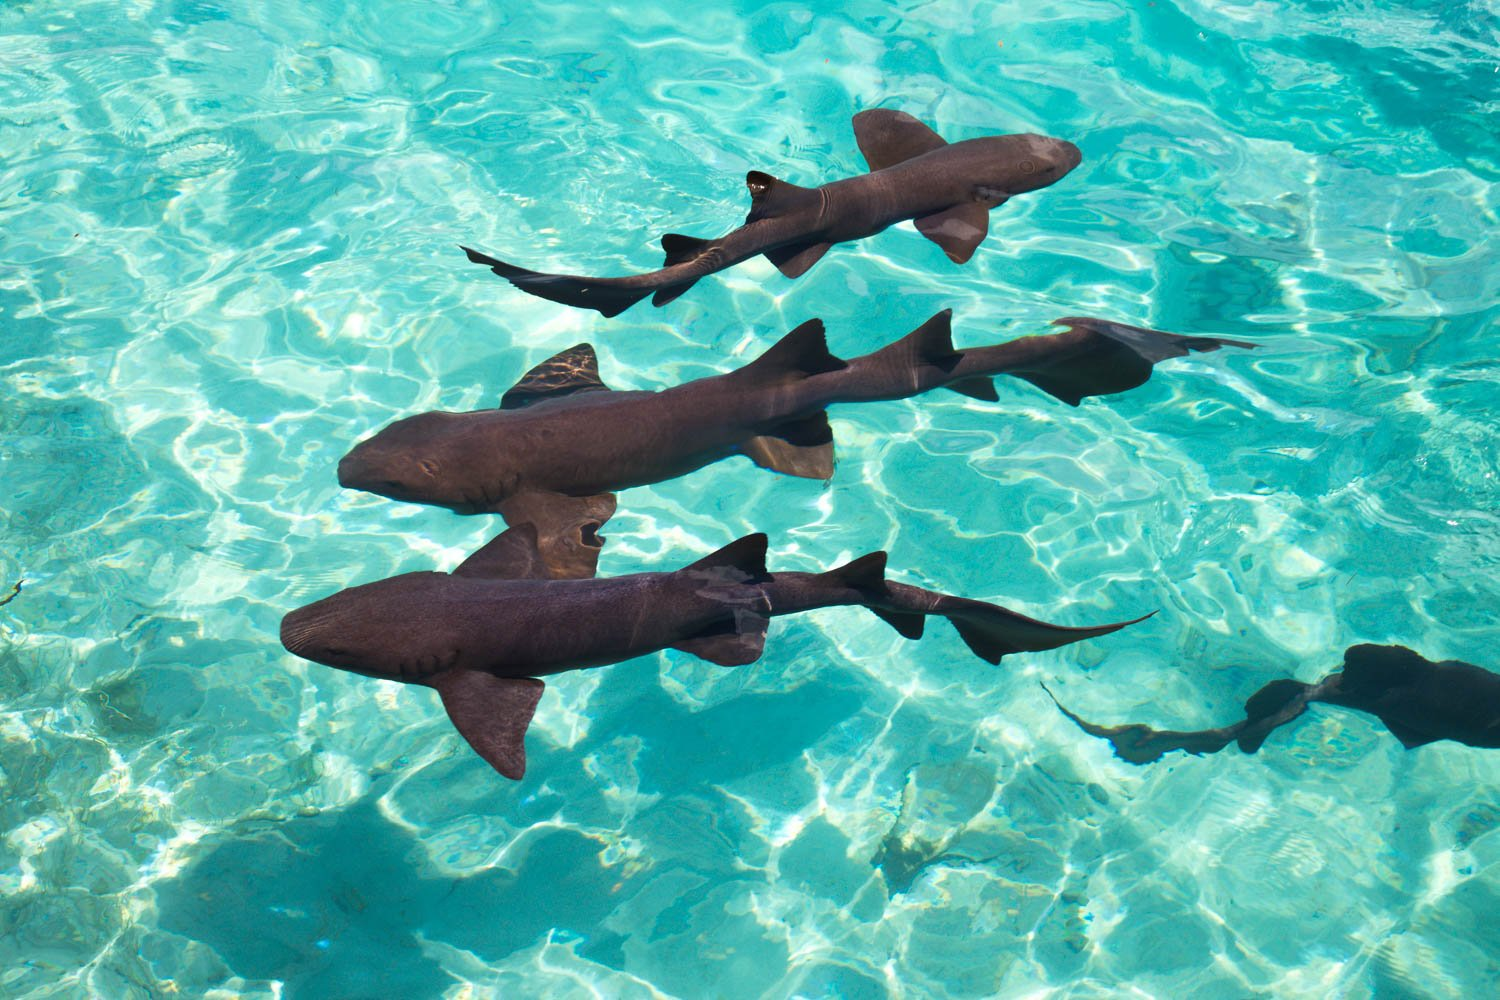 Bahamas Swim with Sharks at Compass Cay on a Nassau Day Trip by plane. Compass Cay is home to Nurse Sharks.